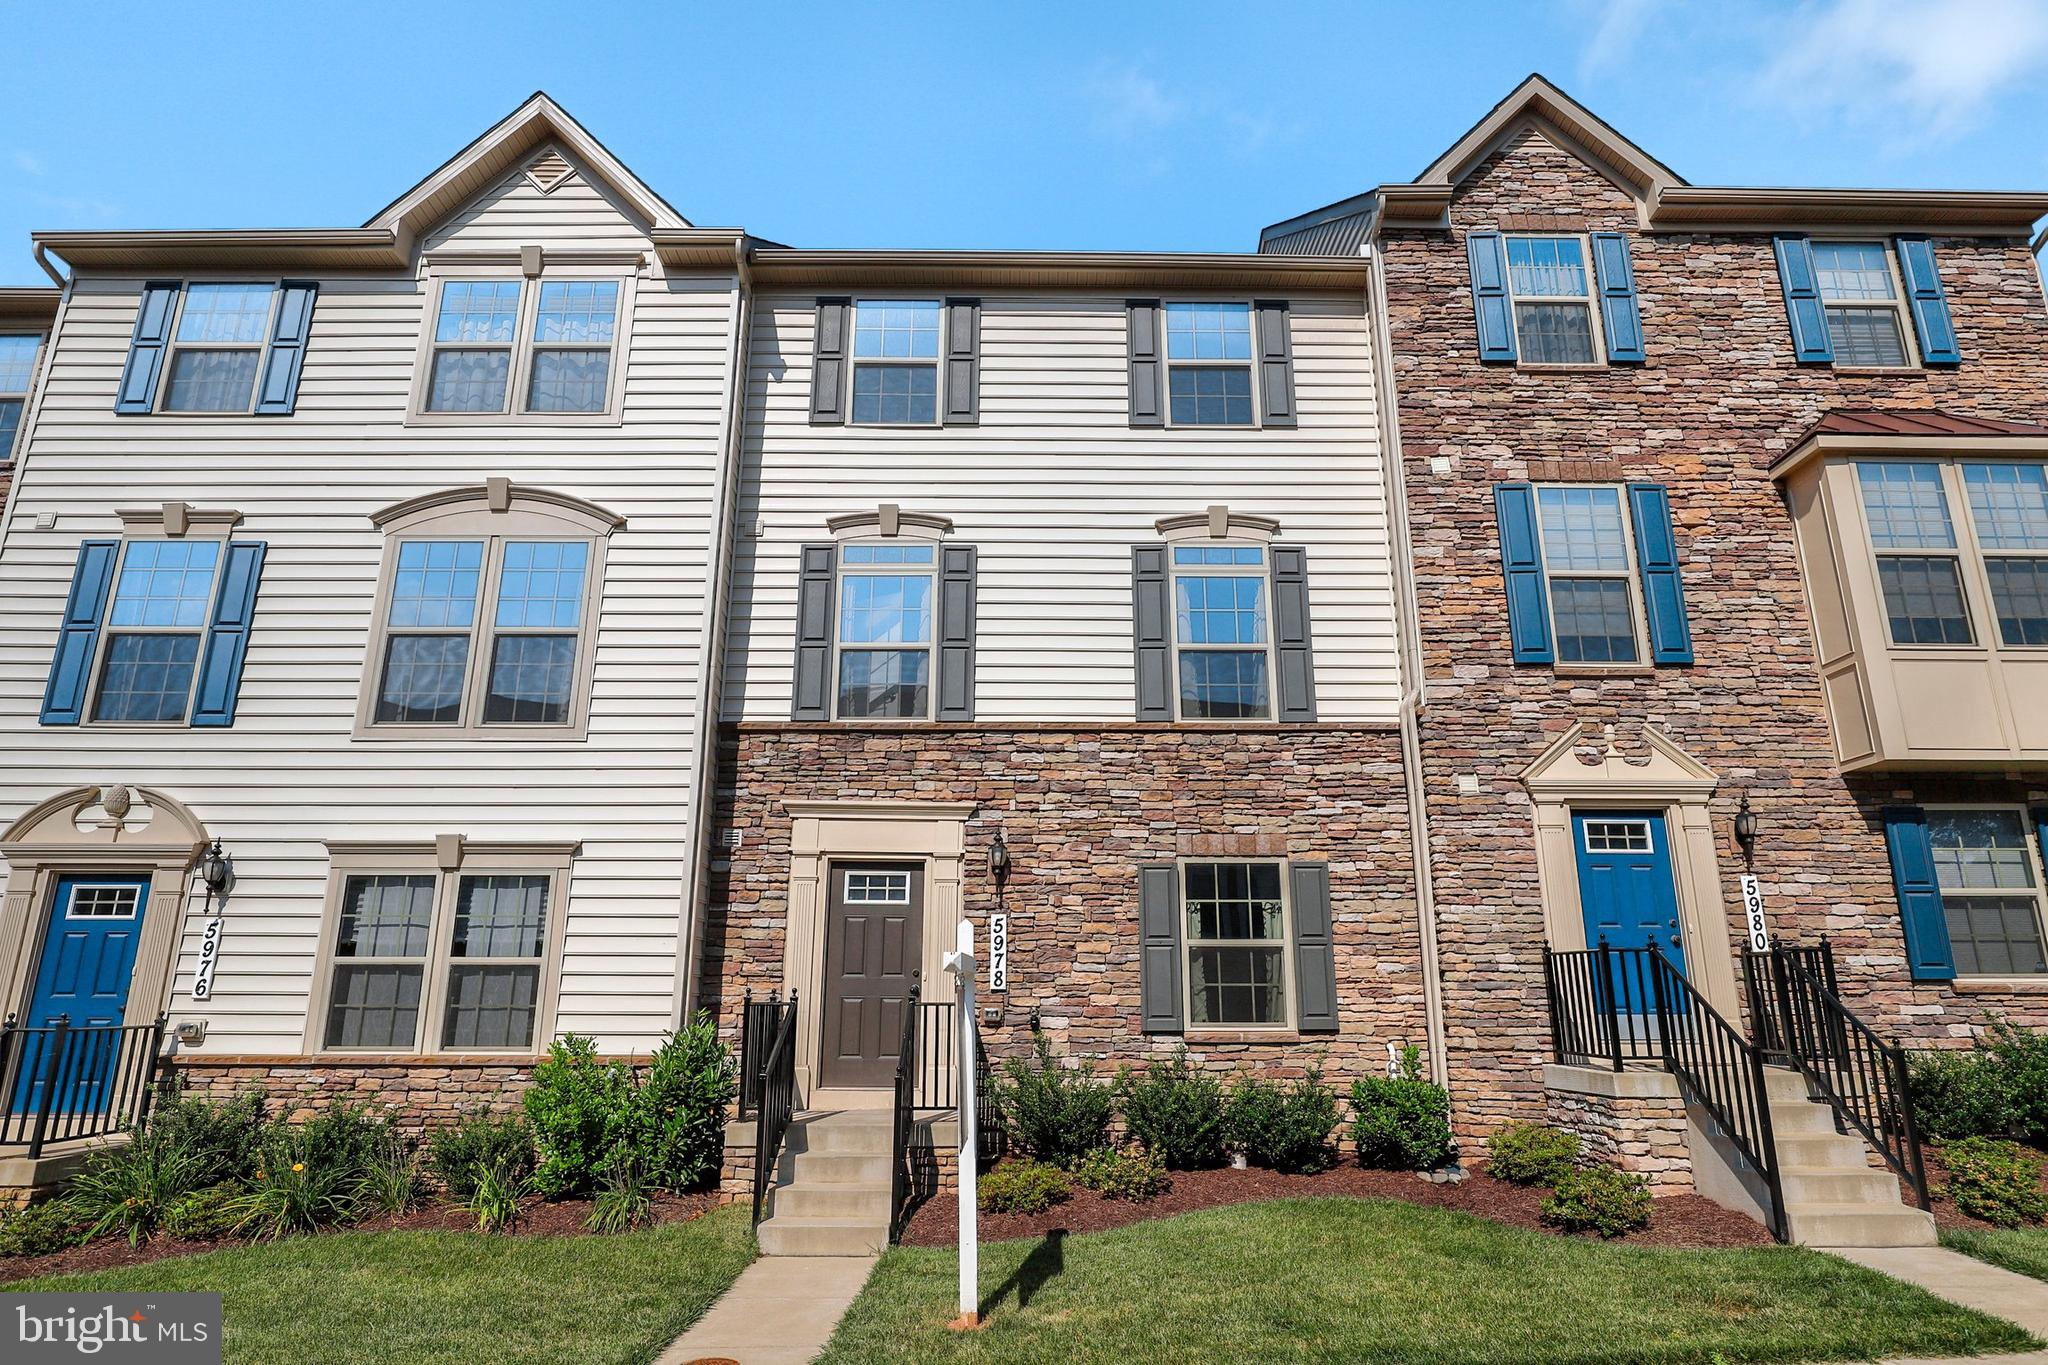 Welcome to this sun-drenched better-than-brand-new home in desirable Jefferson Place! This home is s